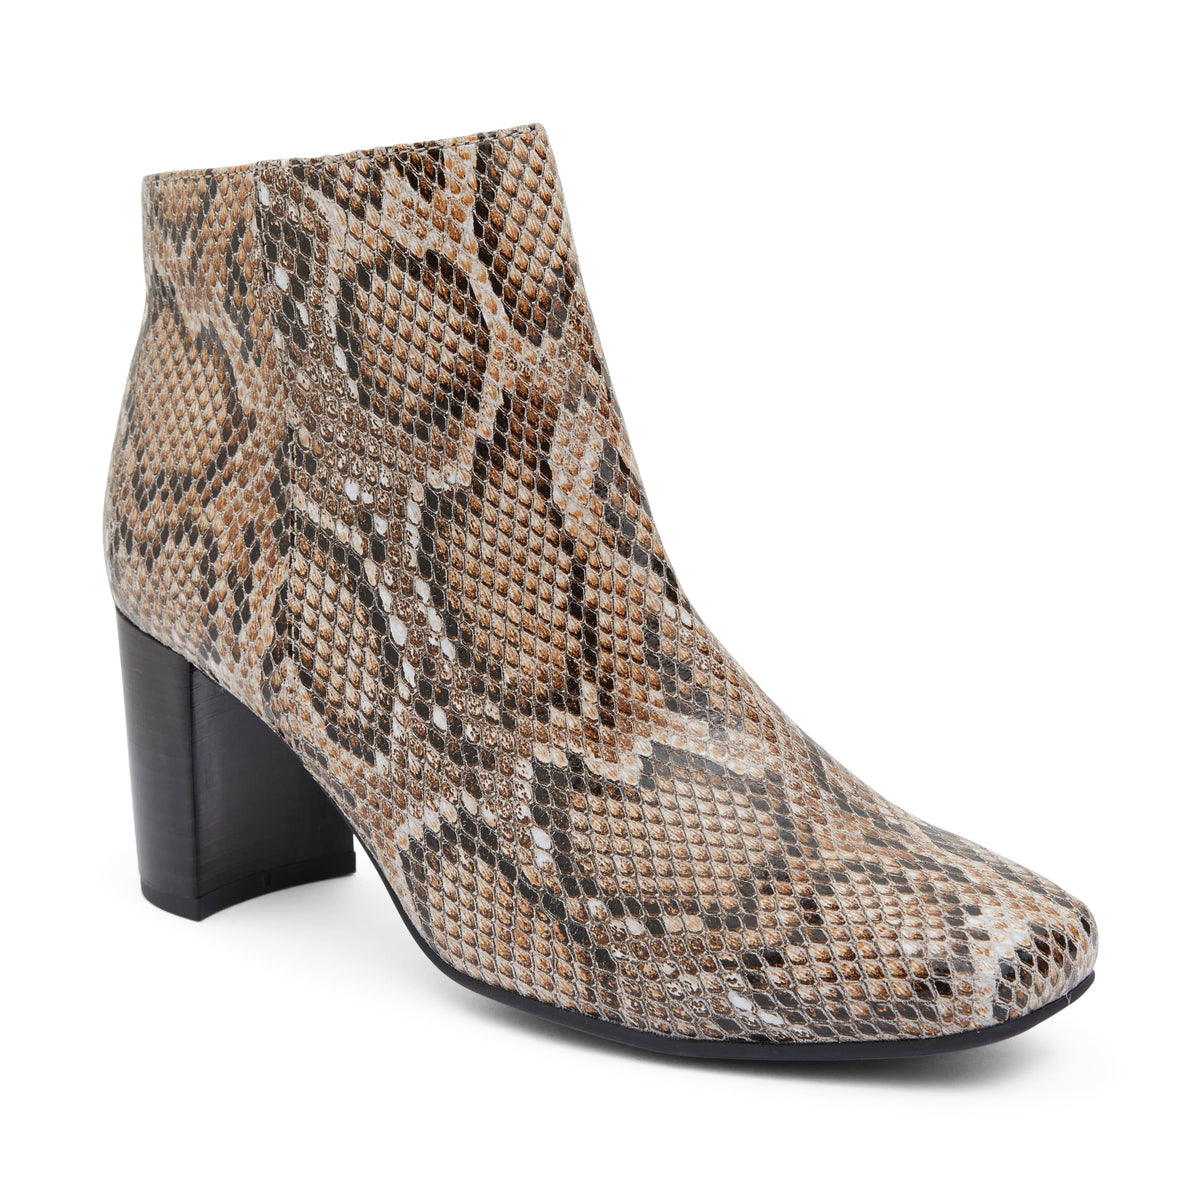 Holland Boot in Neutral Snake Leather